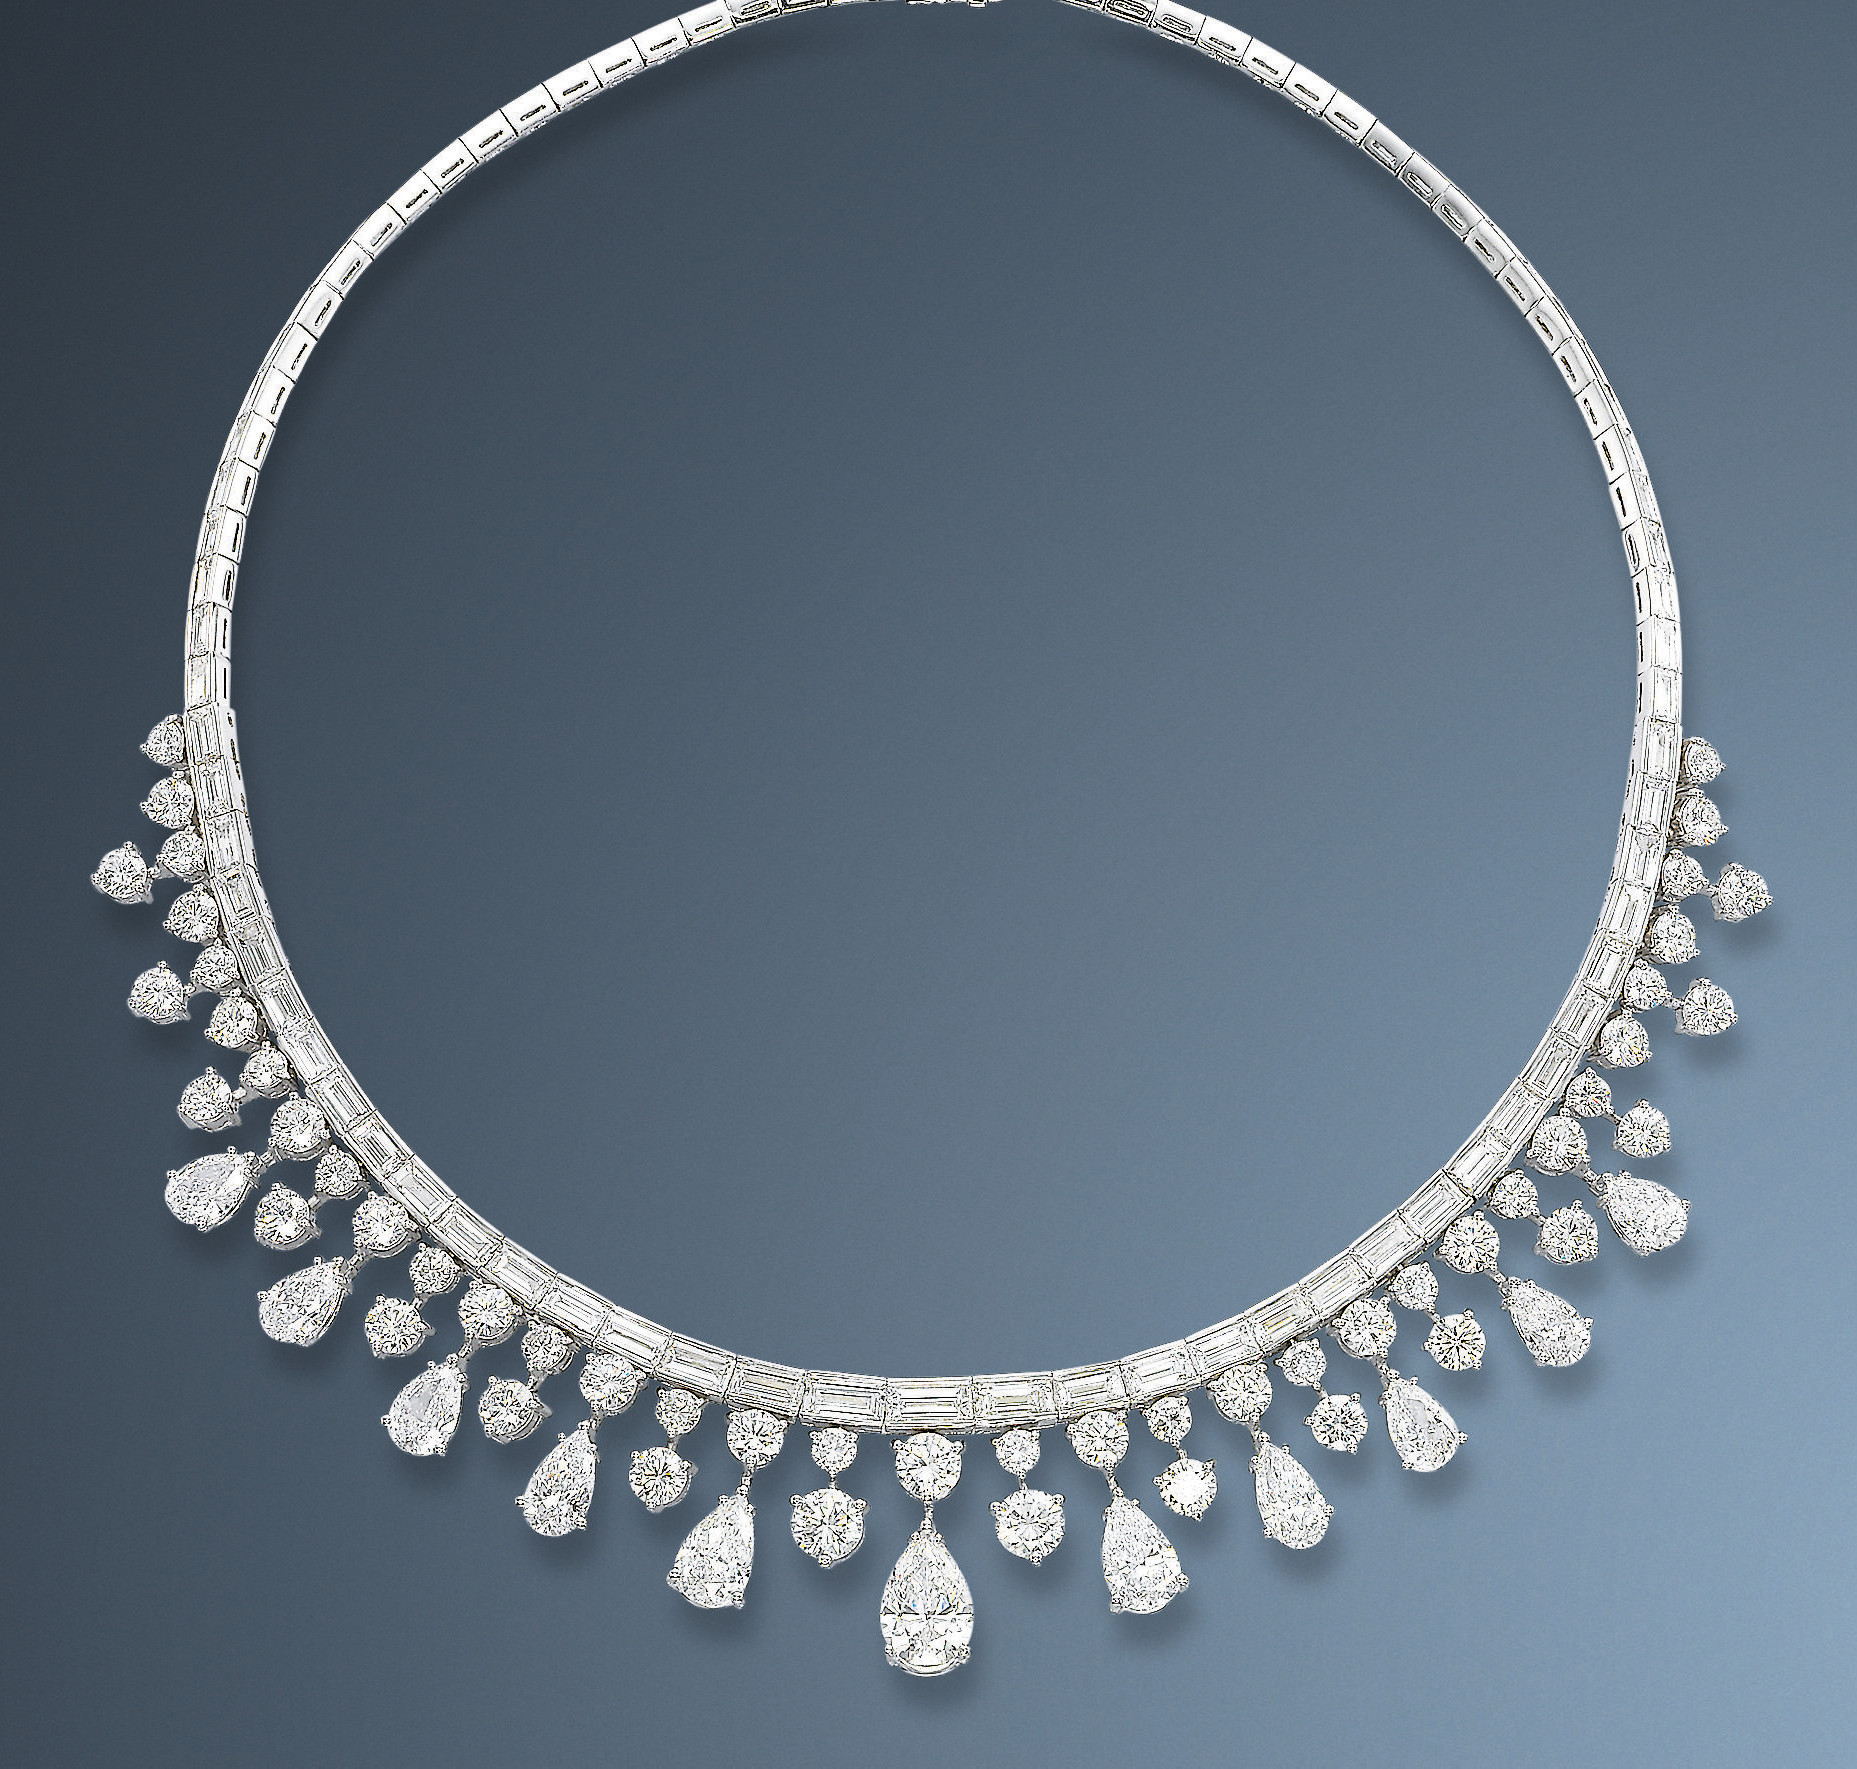 AN ELEGANT DIAMOND NECKLACE